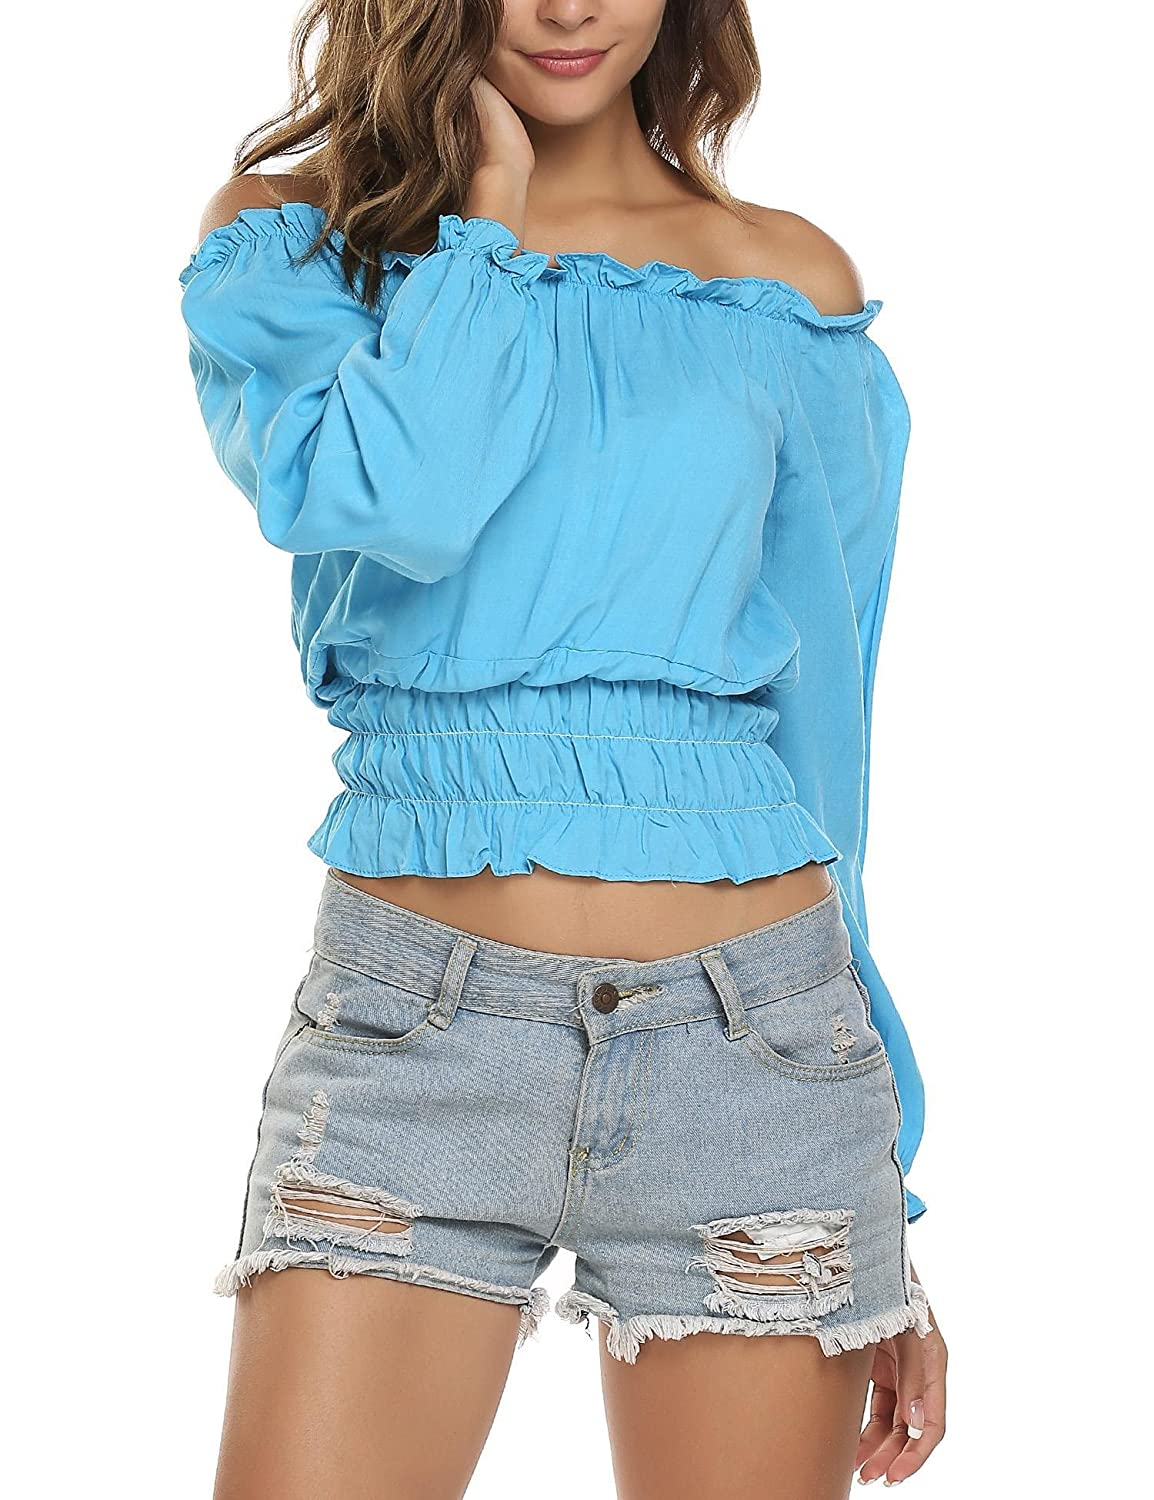 7684d09d4d5 Sexy Cute Crop Top, 4 Colors Available: white,black,burgundy,turquoise.  Boho peasant top featuring strapless,long sleeve,elastic waist,ruffles,plus  size